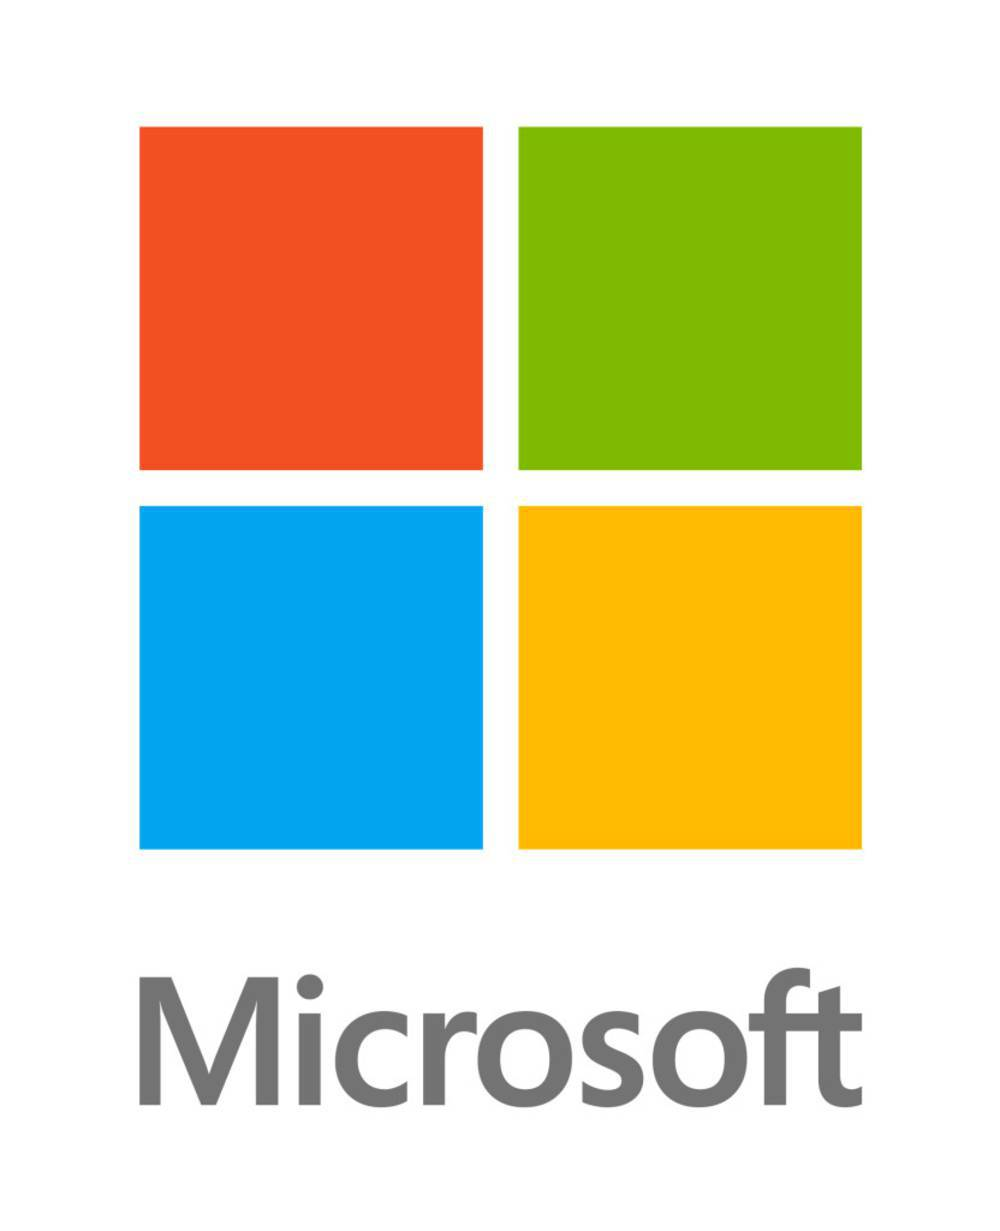 Microsoft partners with automakers to work on self-driving car research and development